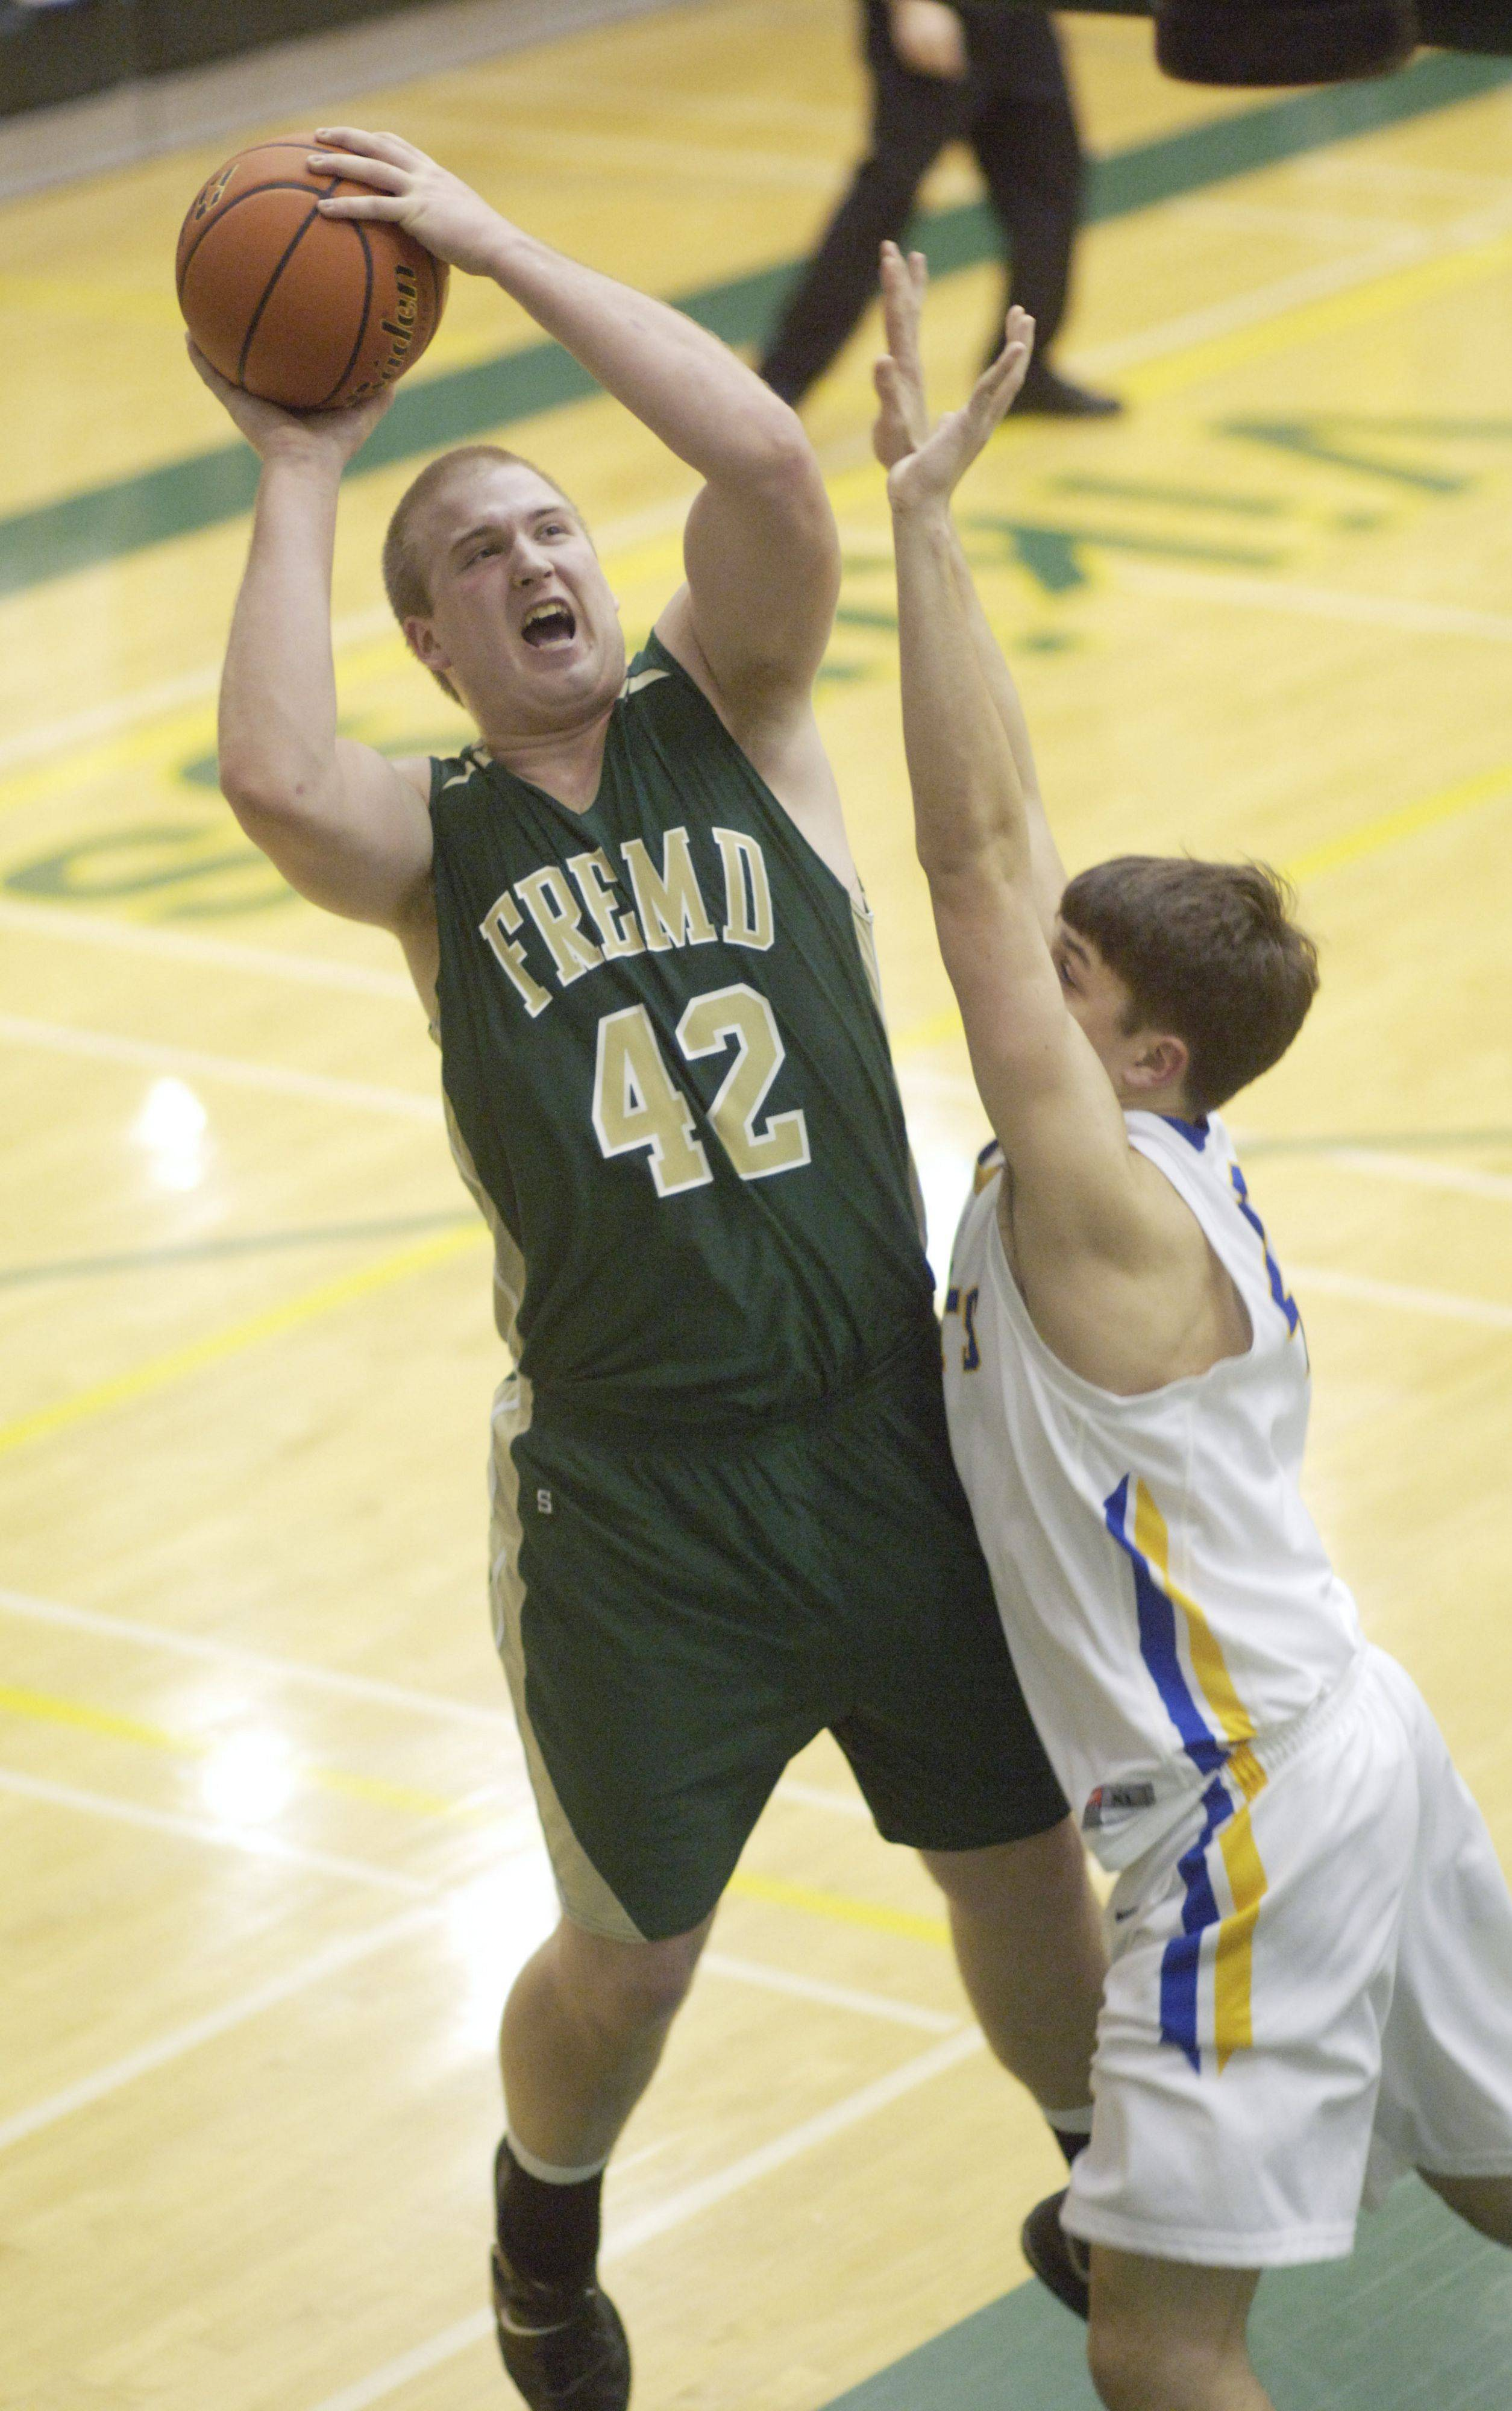 Fremd's Jack Konopka takes a shot in front of Lake Forest's Jonathon Sirus during Friday's game.